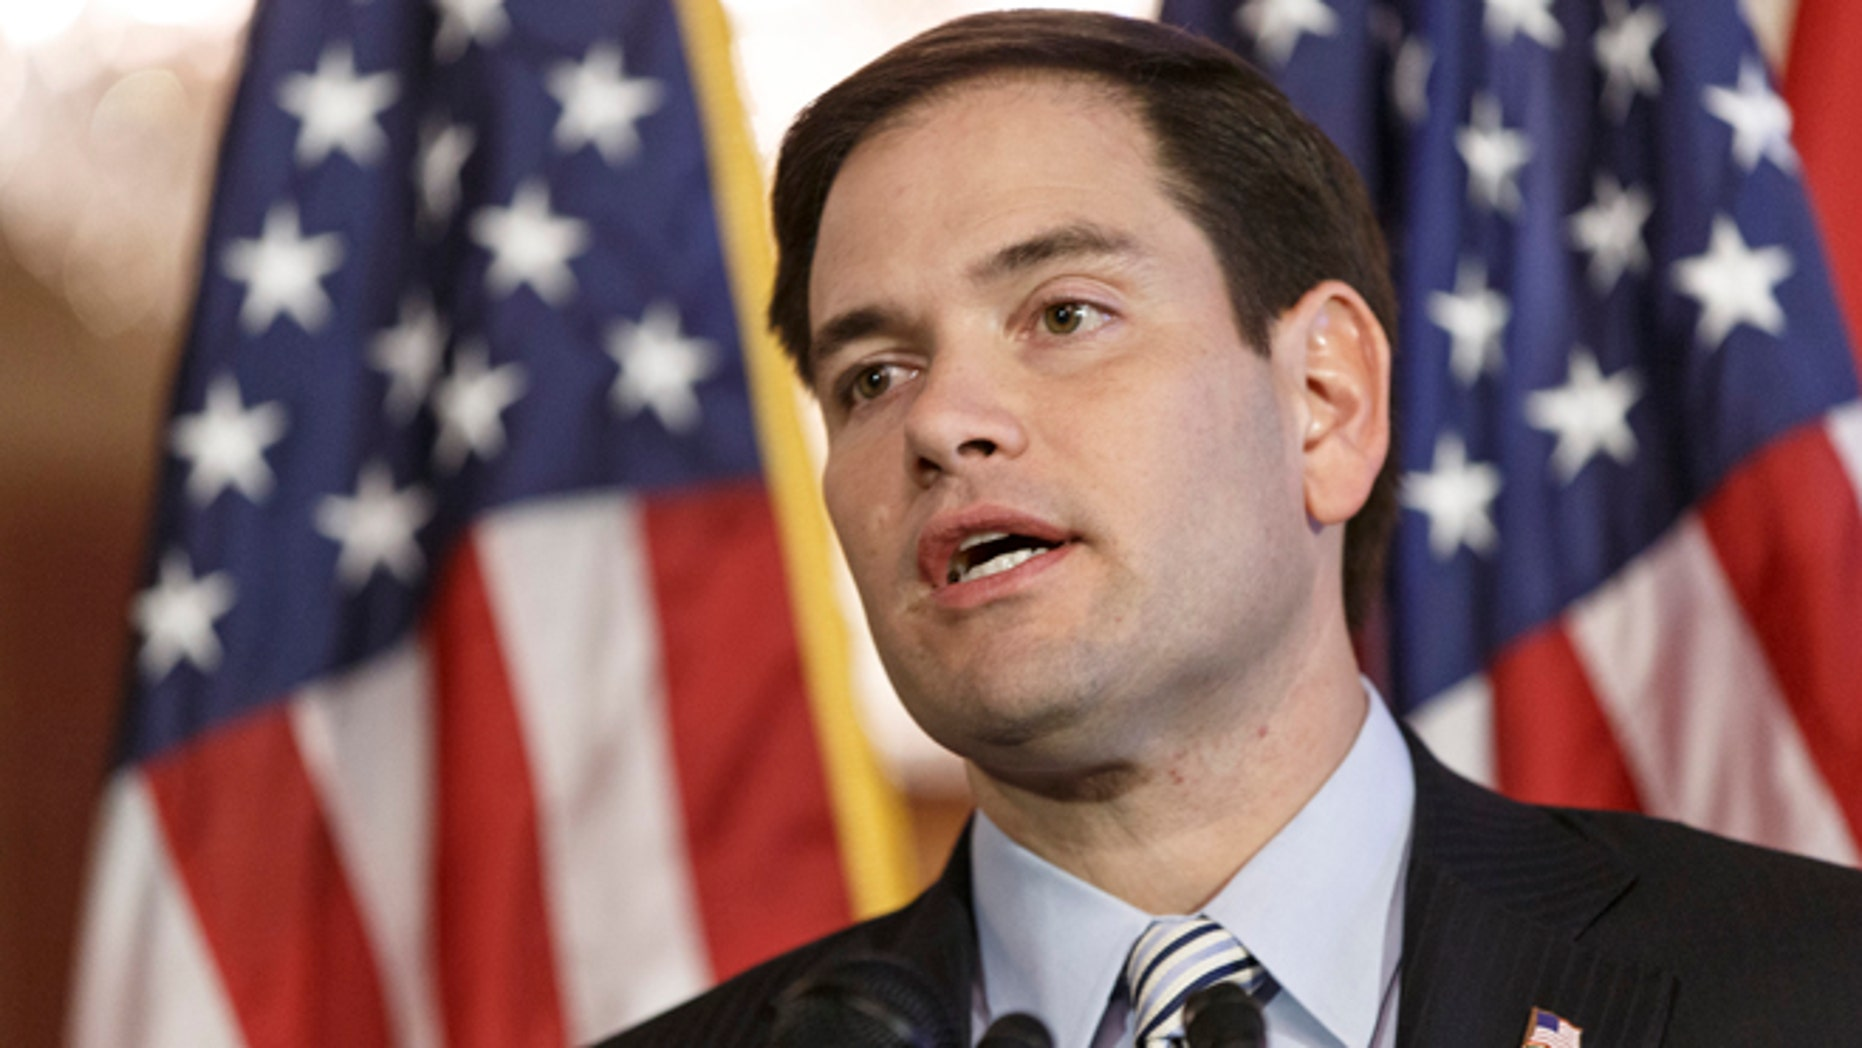 Jan. 8, 2014: Sen. Marco Rubio, R-Fla., speaks about the American dream on the 50th anniversary of President Lyndon Johnson's first State of the Union address in 1964, where LBJ committed the government to a war on poverty.